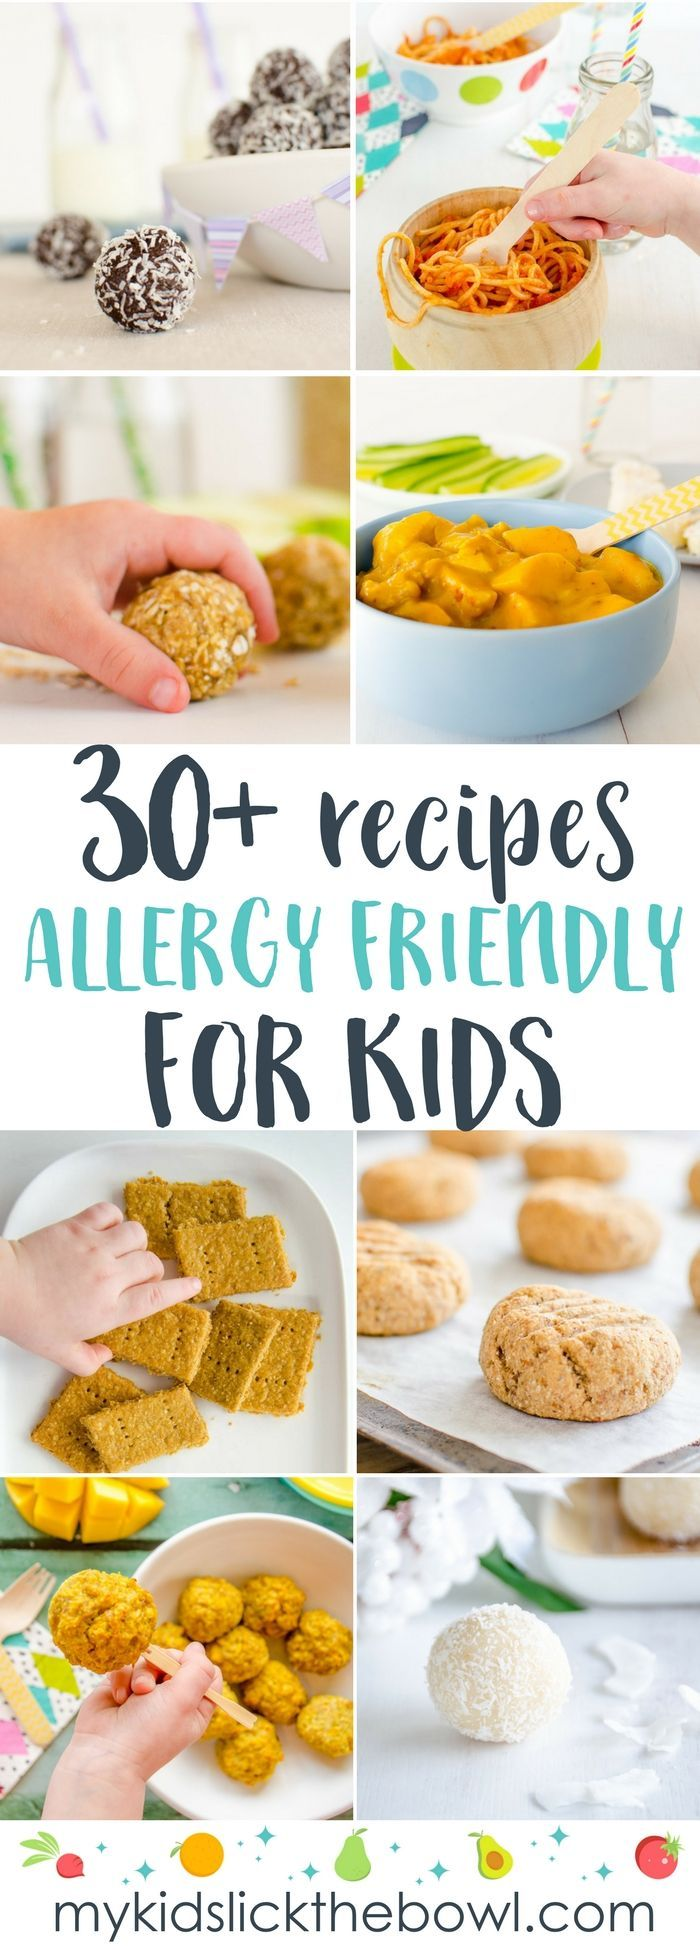 436 best allergy friendly recipes for kids images on pinterest allergy friendly recipes recipes that are free of the 8 most common food allergens forumfinder Image collections